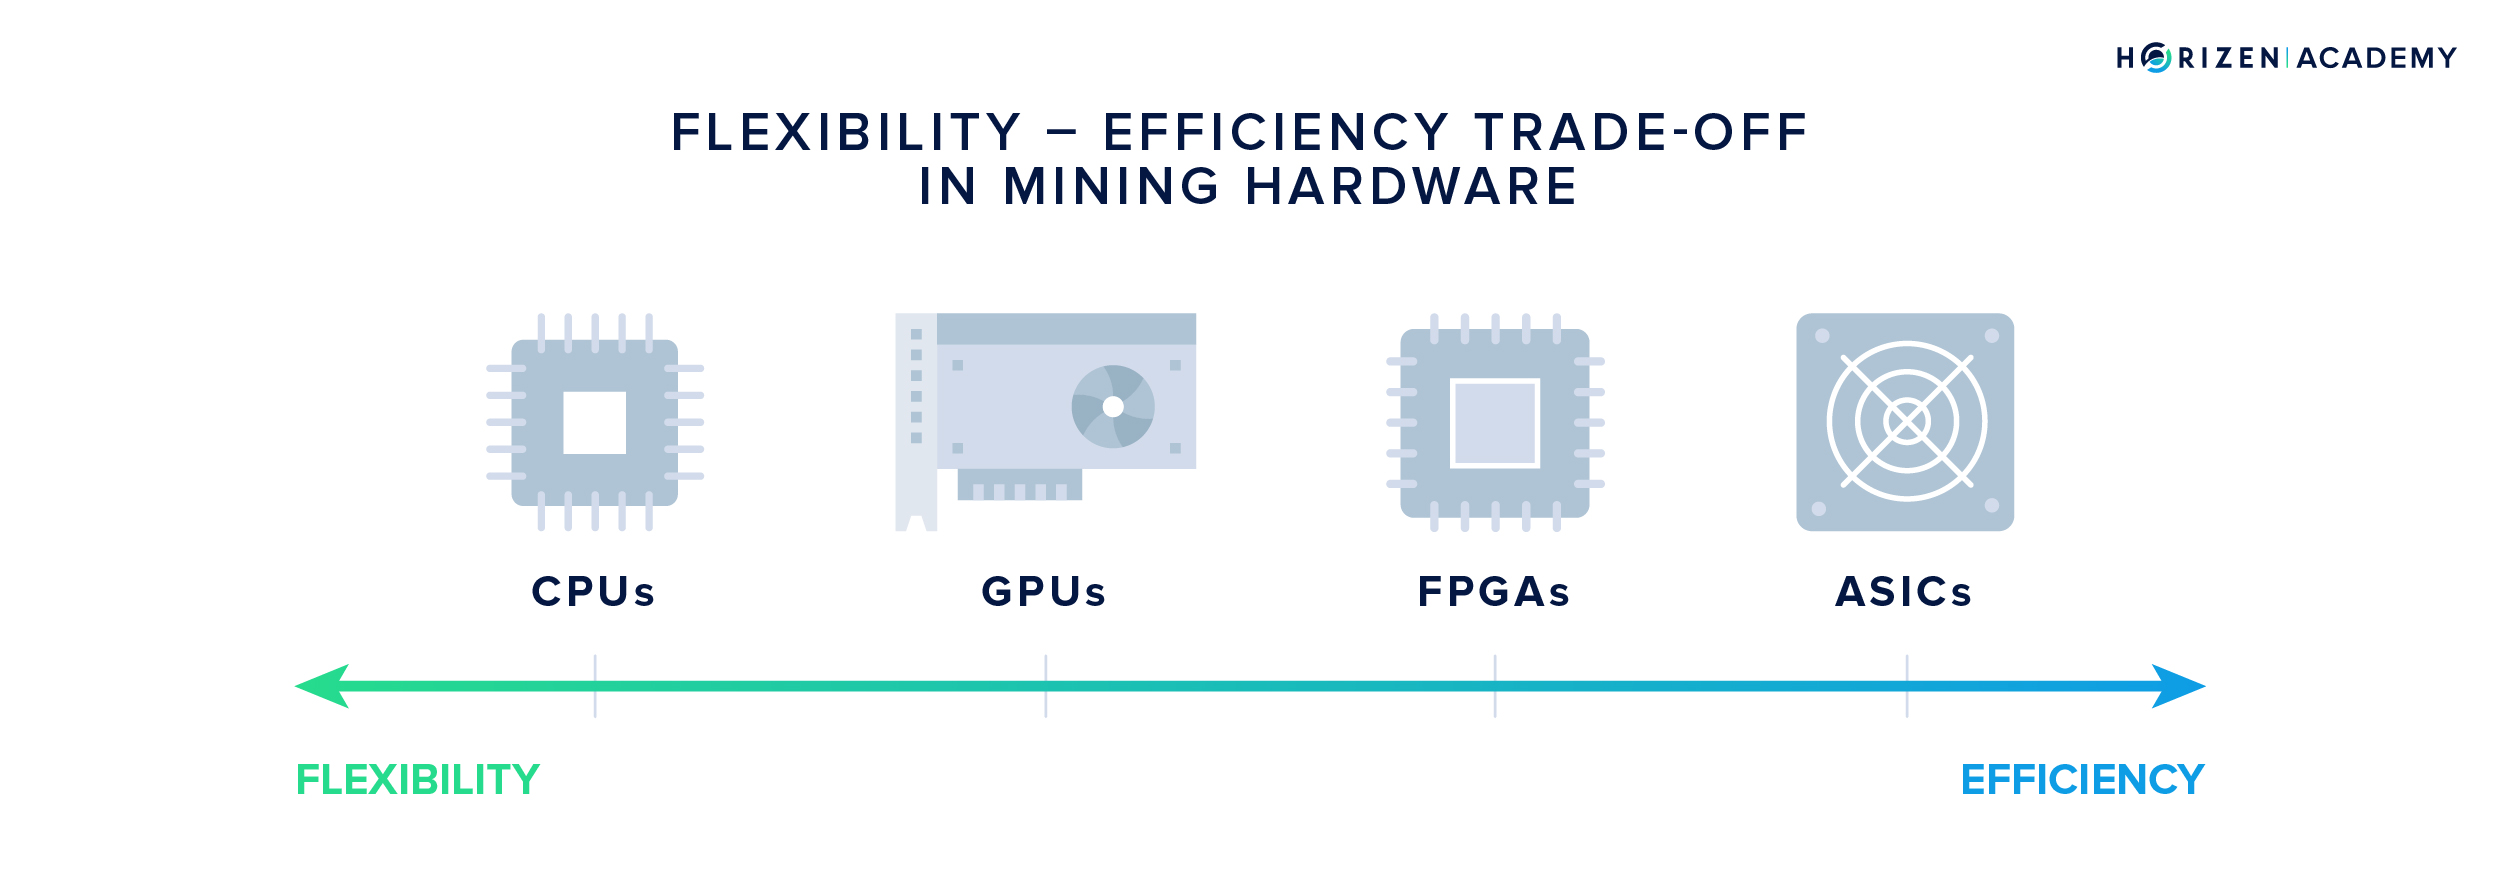 Flexibility - Efficiency Trade-Off in Mining Hardware: CPUs, GPUs, FPGAs and ASICs